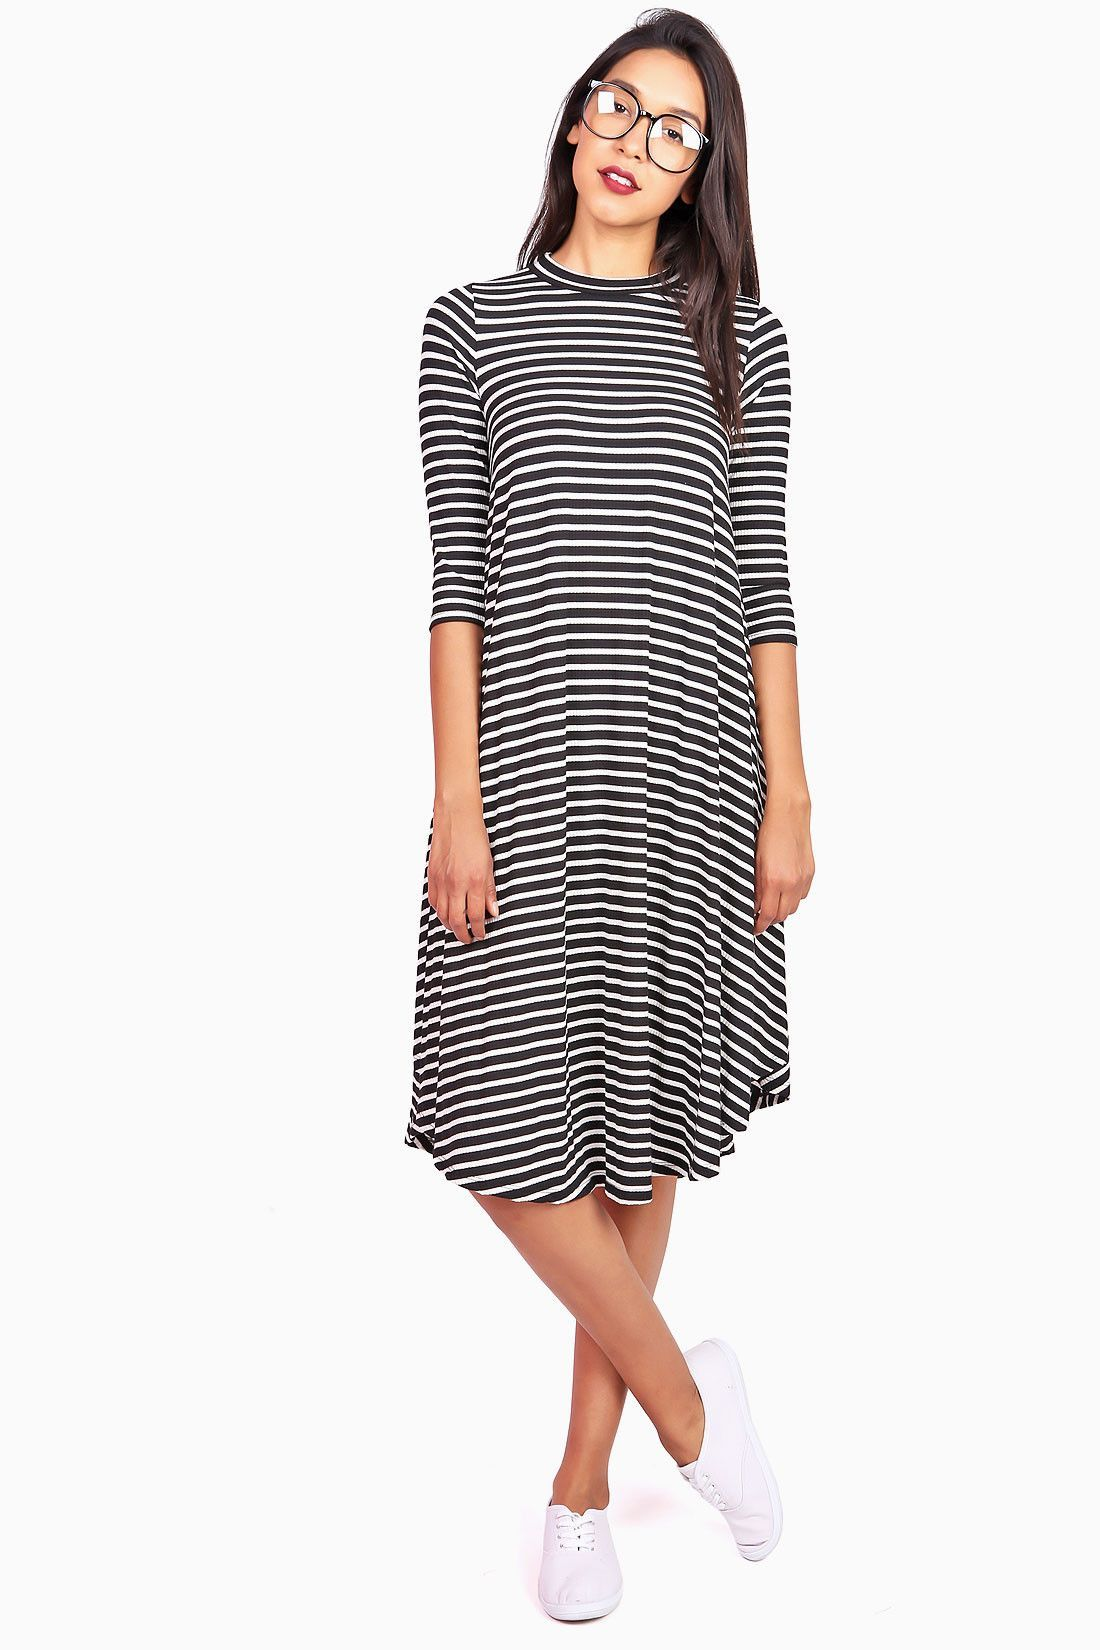 511e8ba0e1 Casual t- shirt dress with a fitted neckline and half length sleeves.  Stretchy ribbed fabric flares into an A-line midi dress.